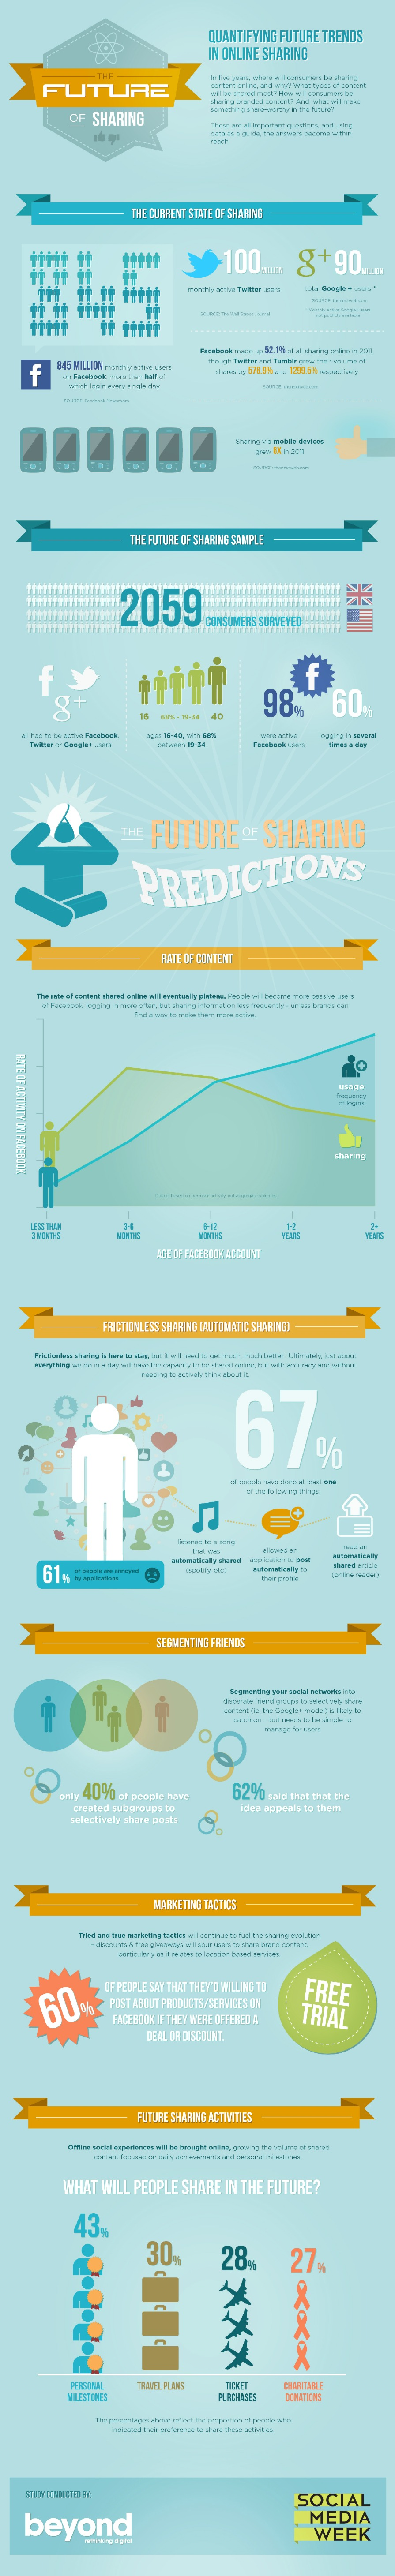 The Future of Sharing on Facebook, Twitter and Google+ [INFOGRAPHIC]